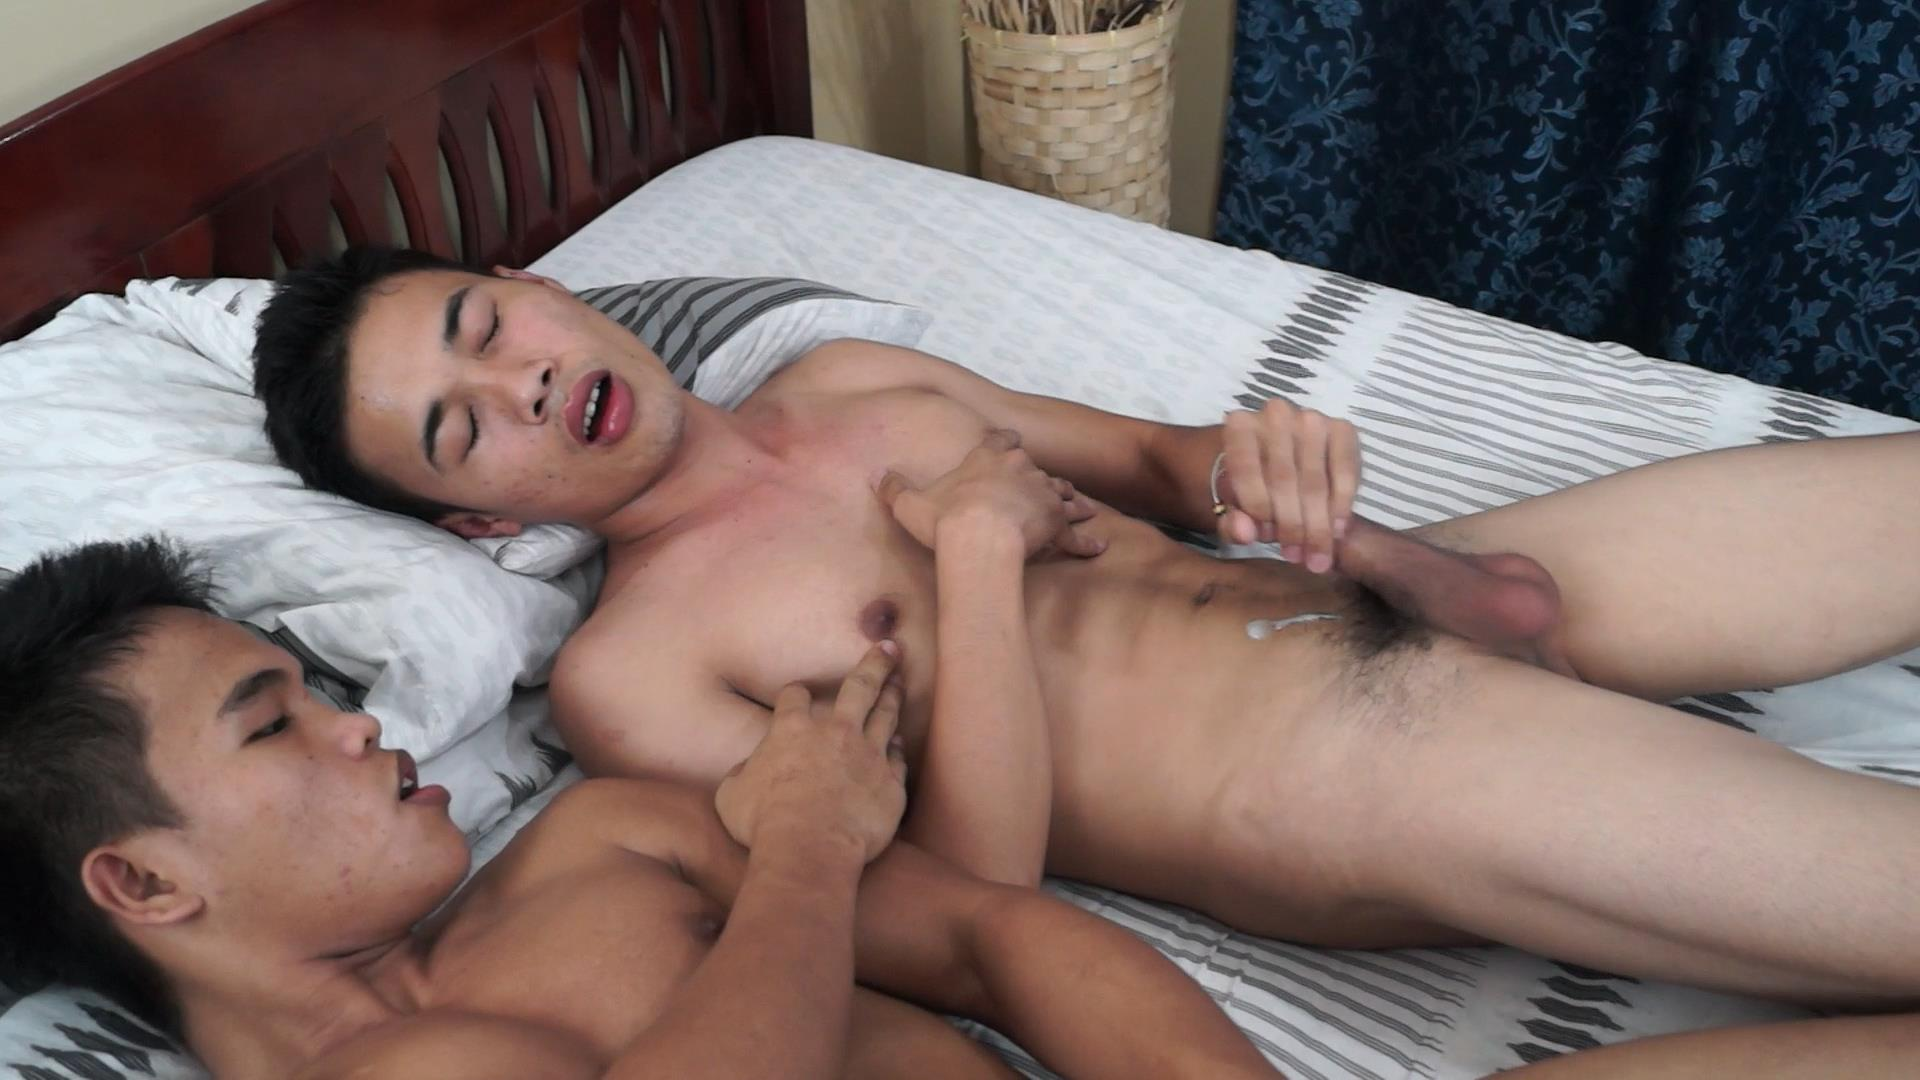 Asia Boy Jacob and Andrew Asian Twinks With Big Asian Cocks Fucking Bareback Amateur Gay Porn 64 Asian Twinks With Big Asian Cocks Fucking Bareback